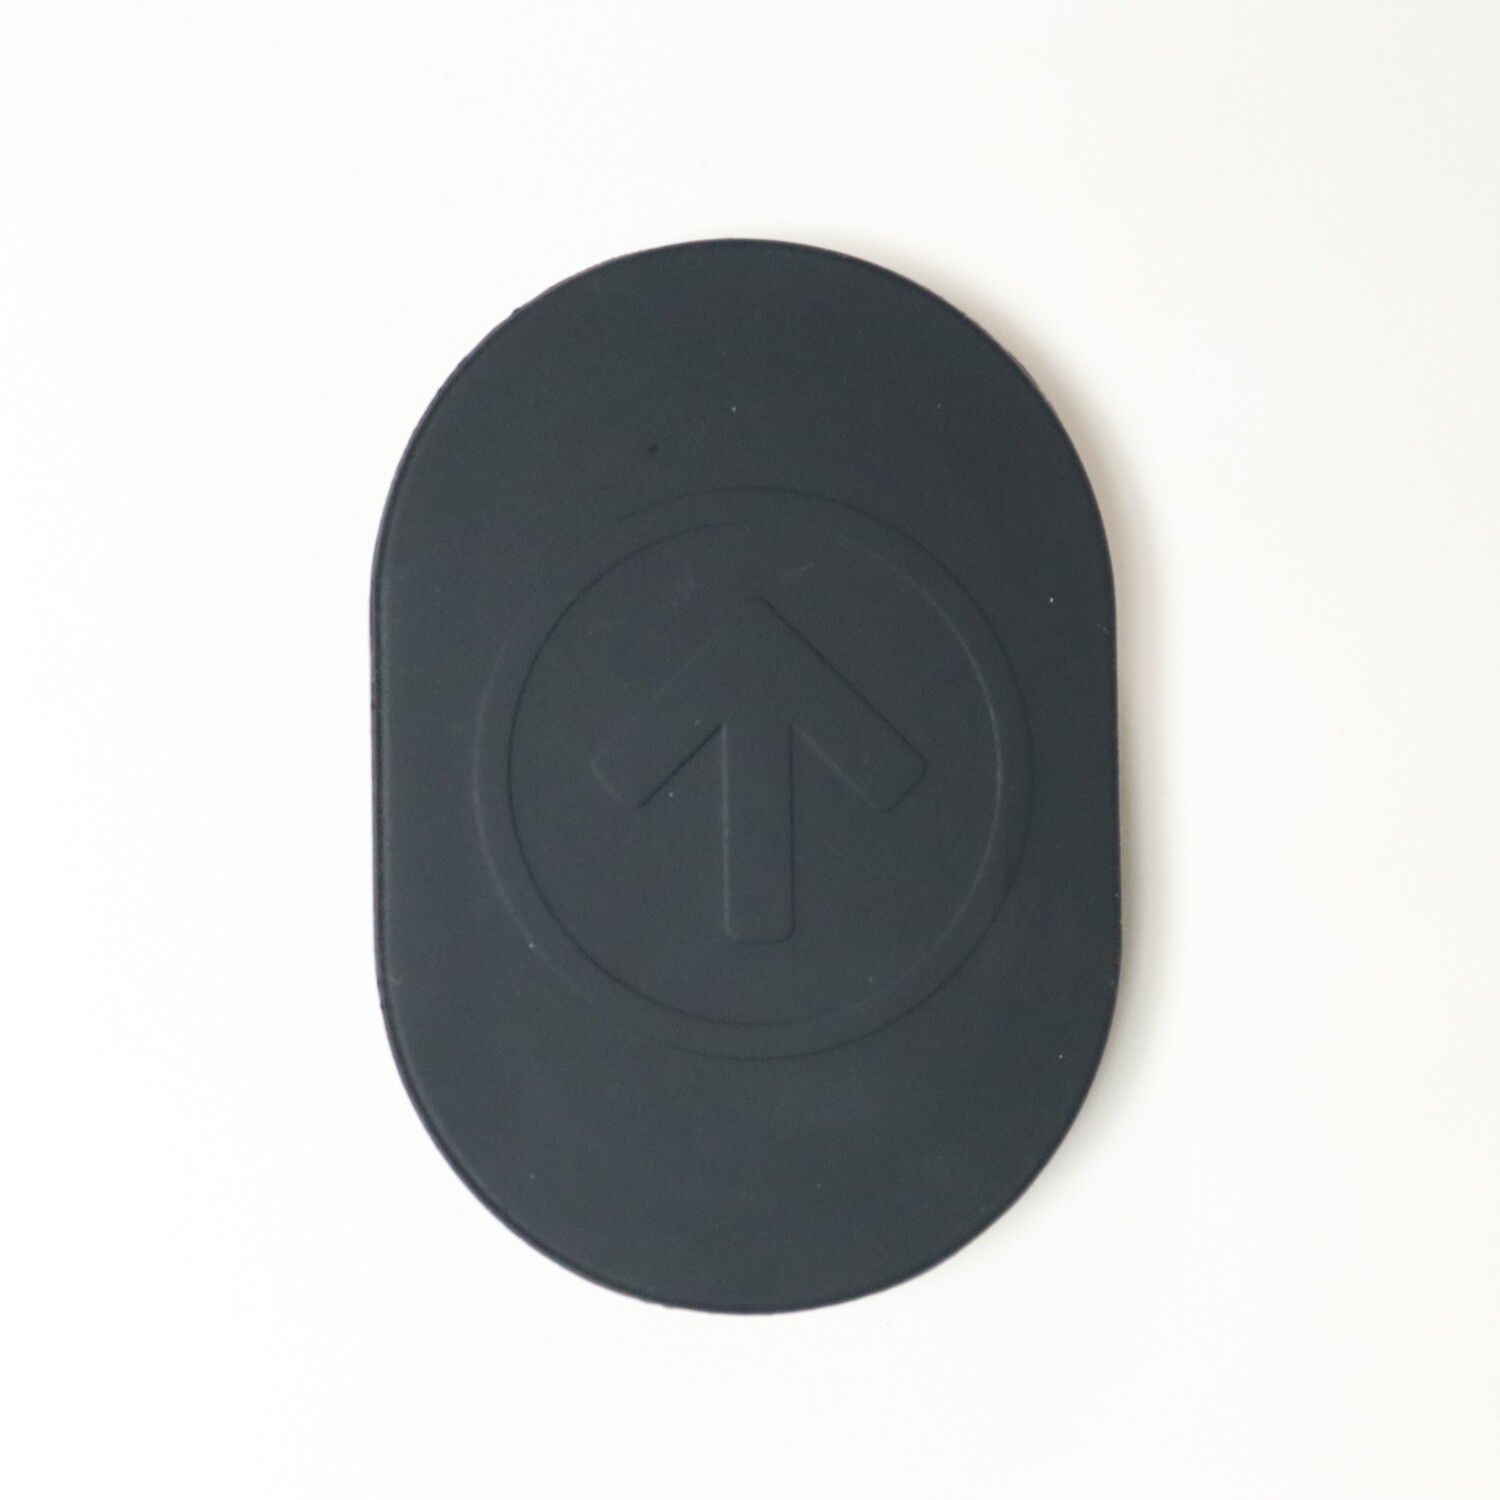 Oval side cover